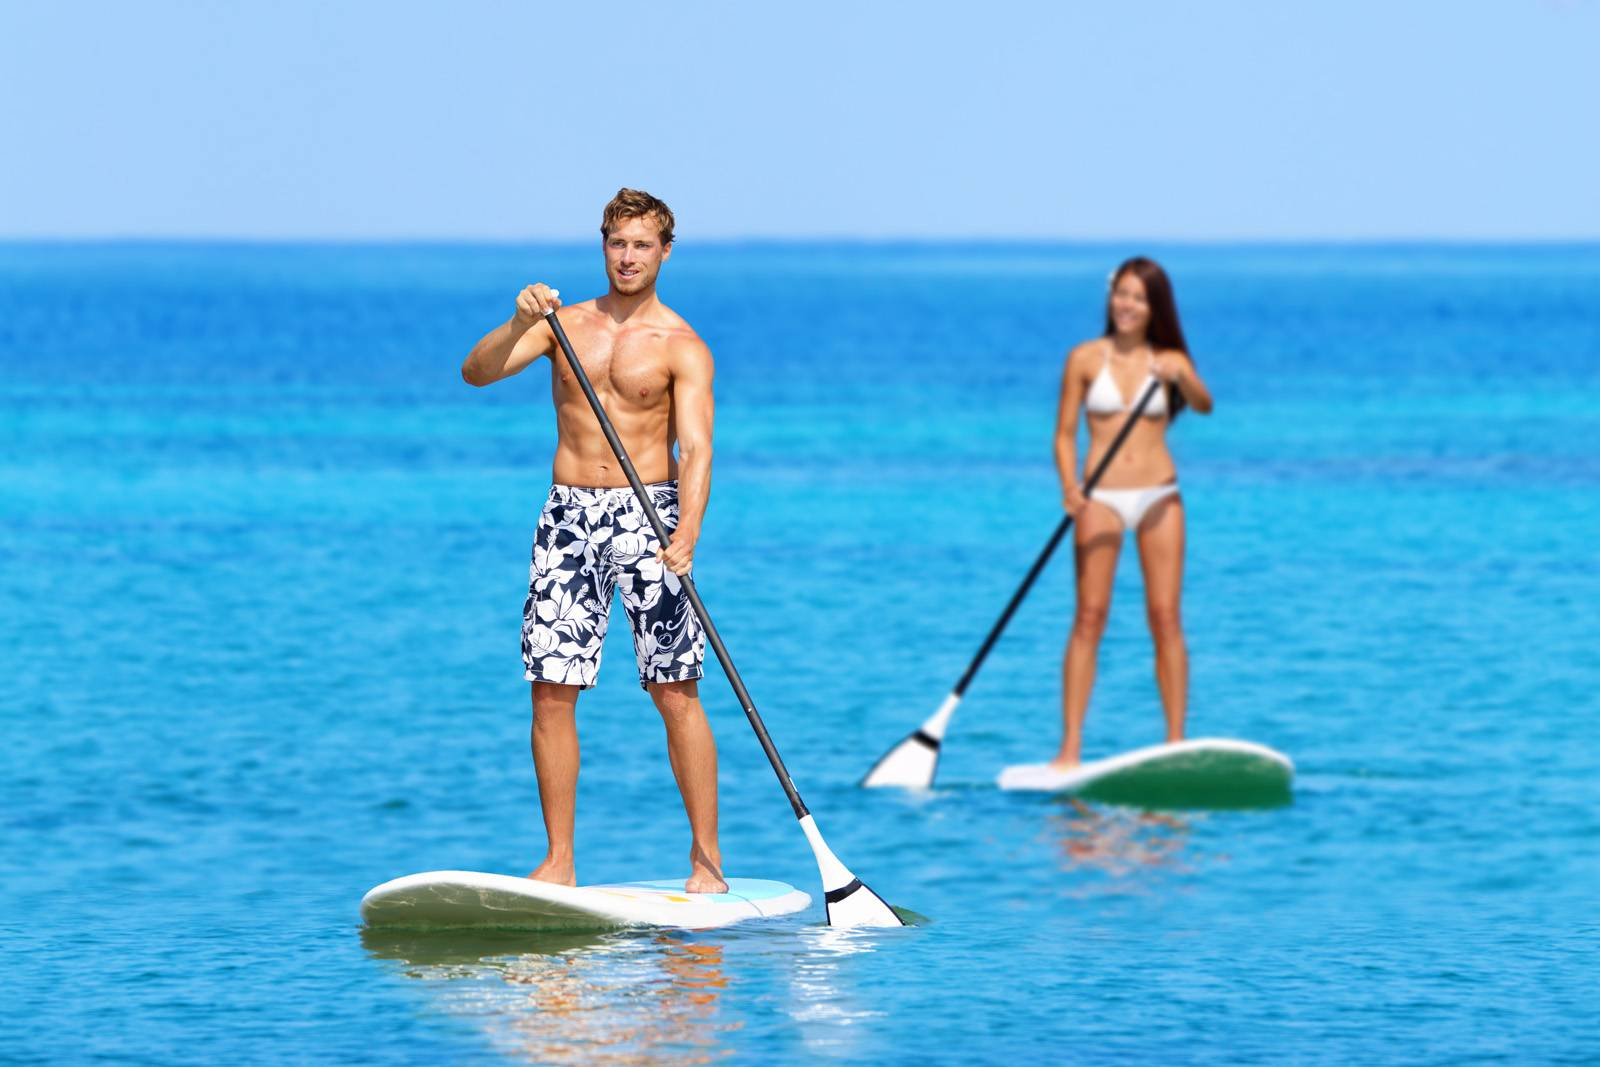 Stand up paddling influence to psychophysical health